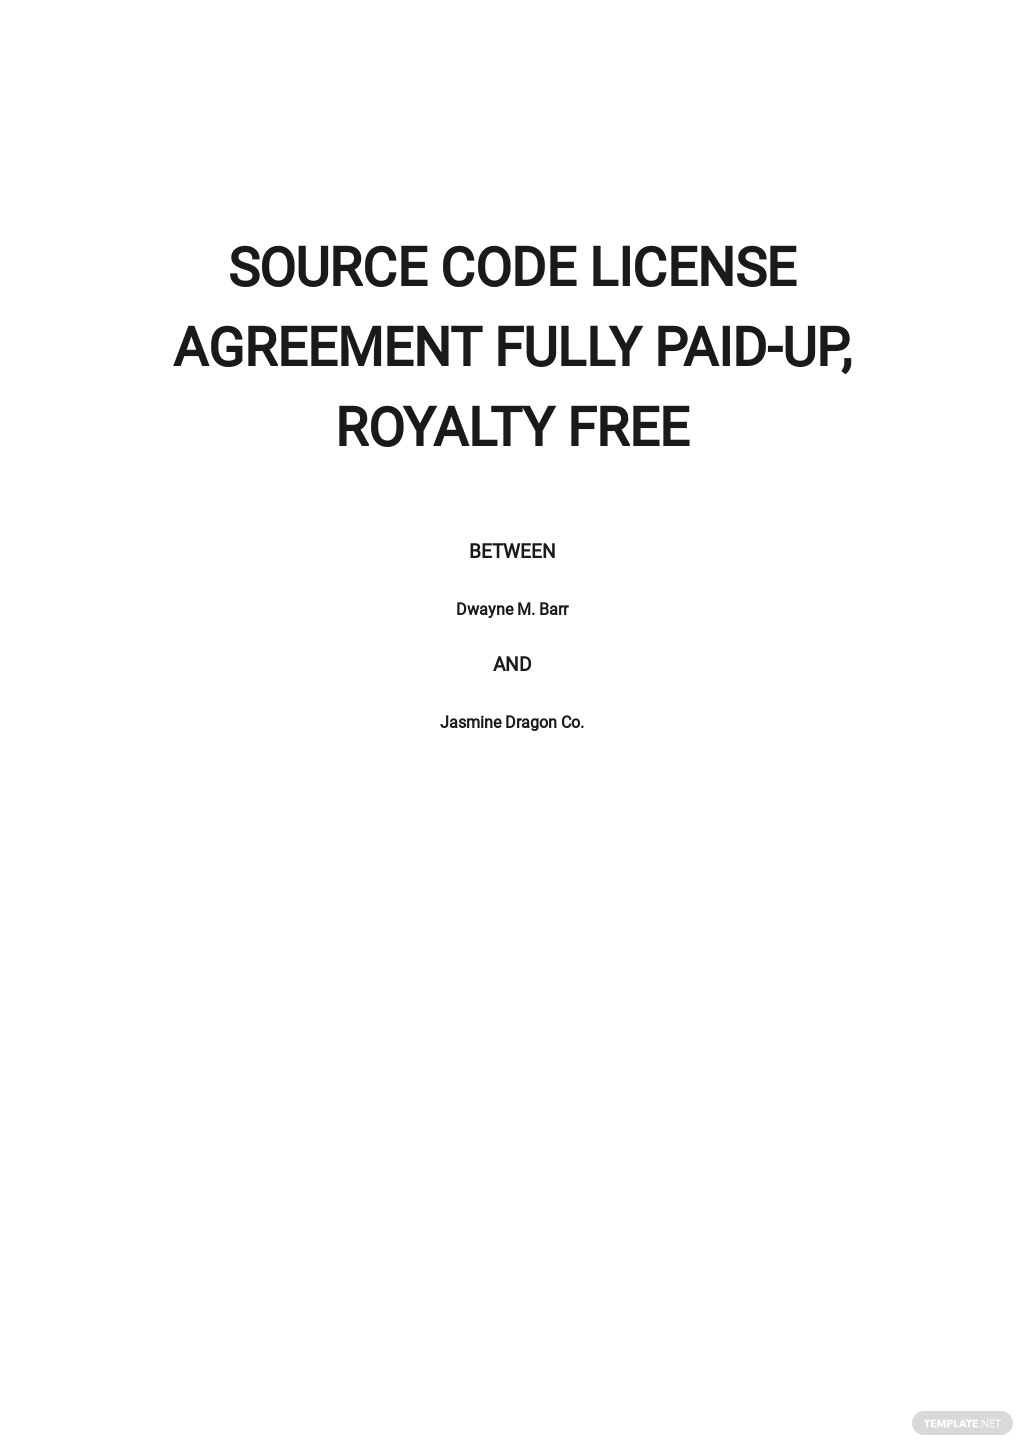 Source Code License Agreement Fully Paid Up, Royalty Free Template.jpe